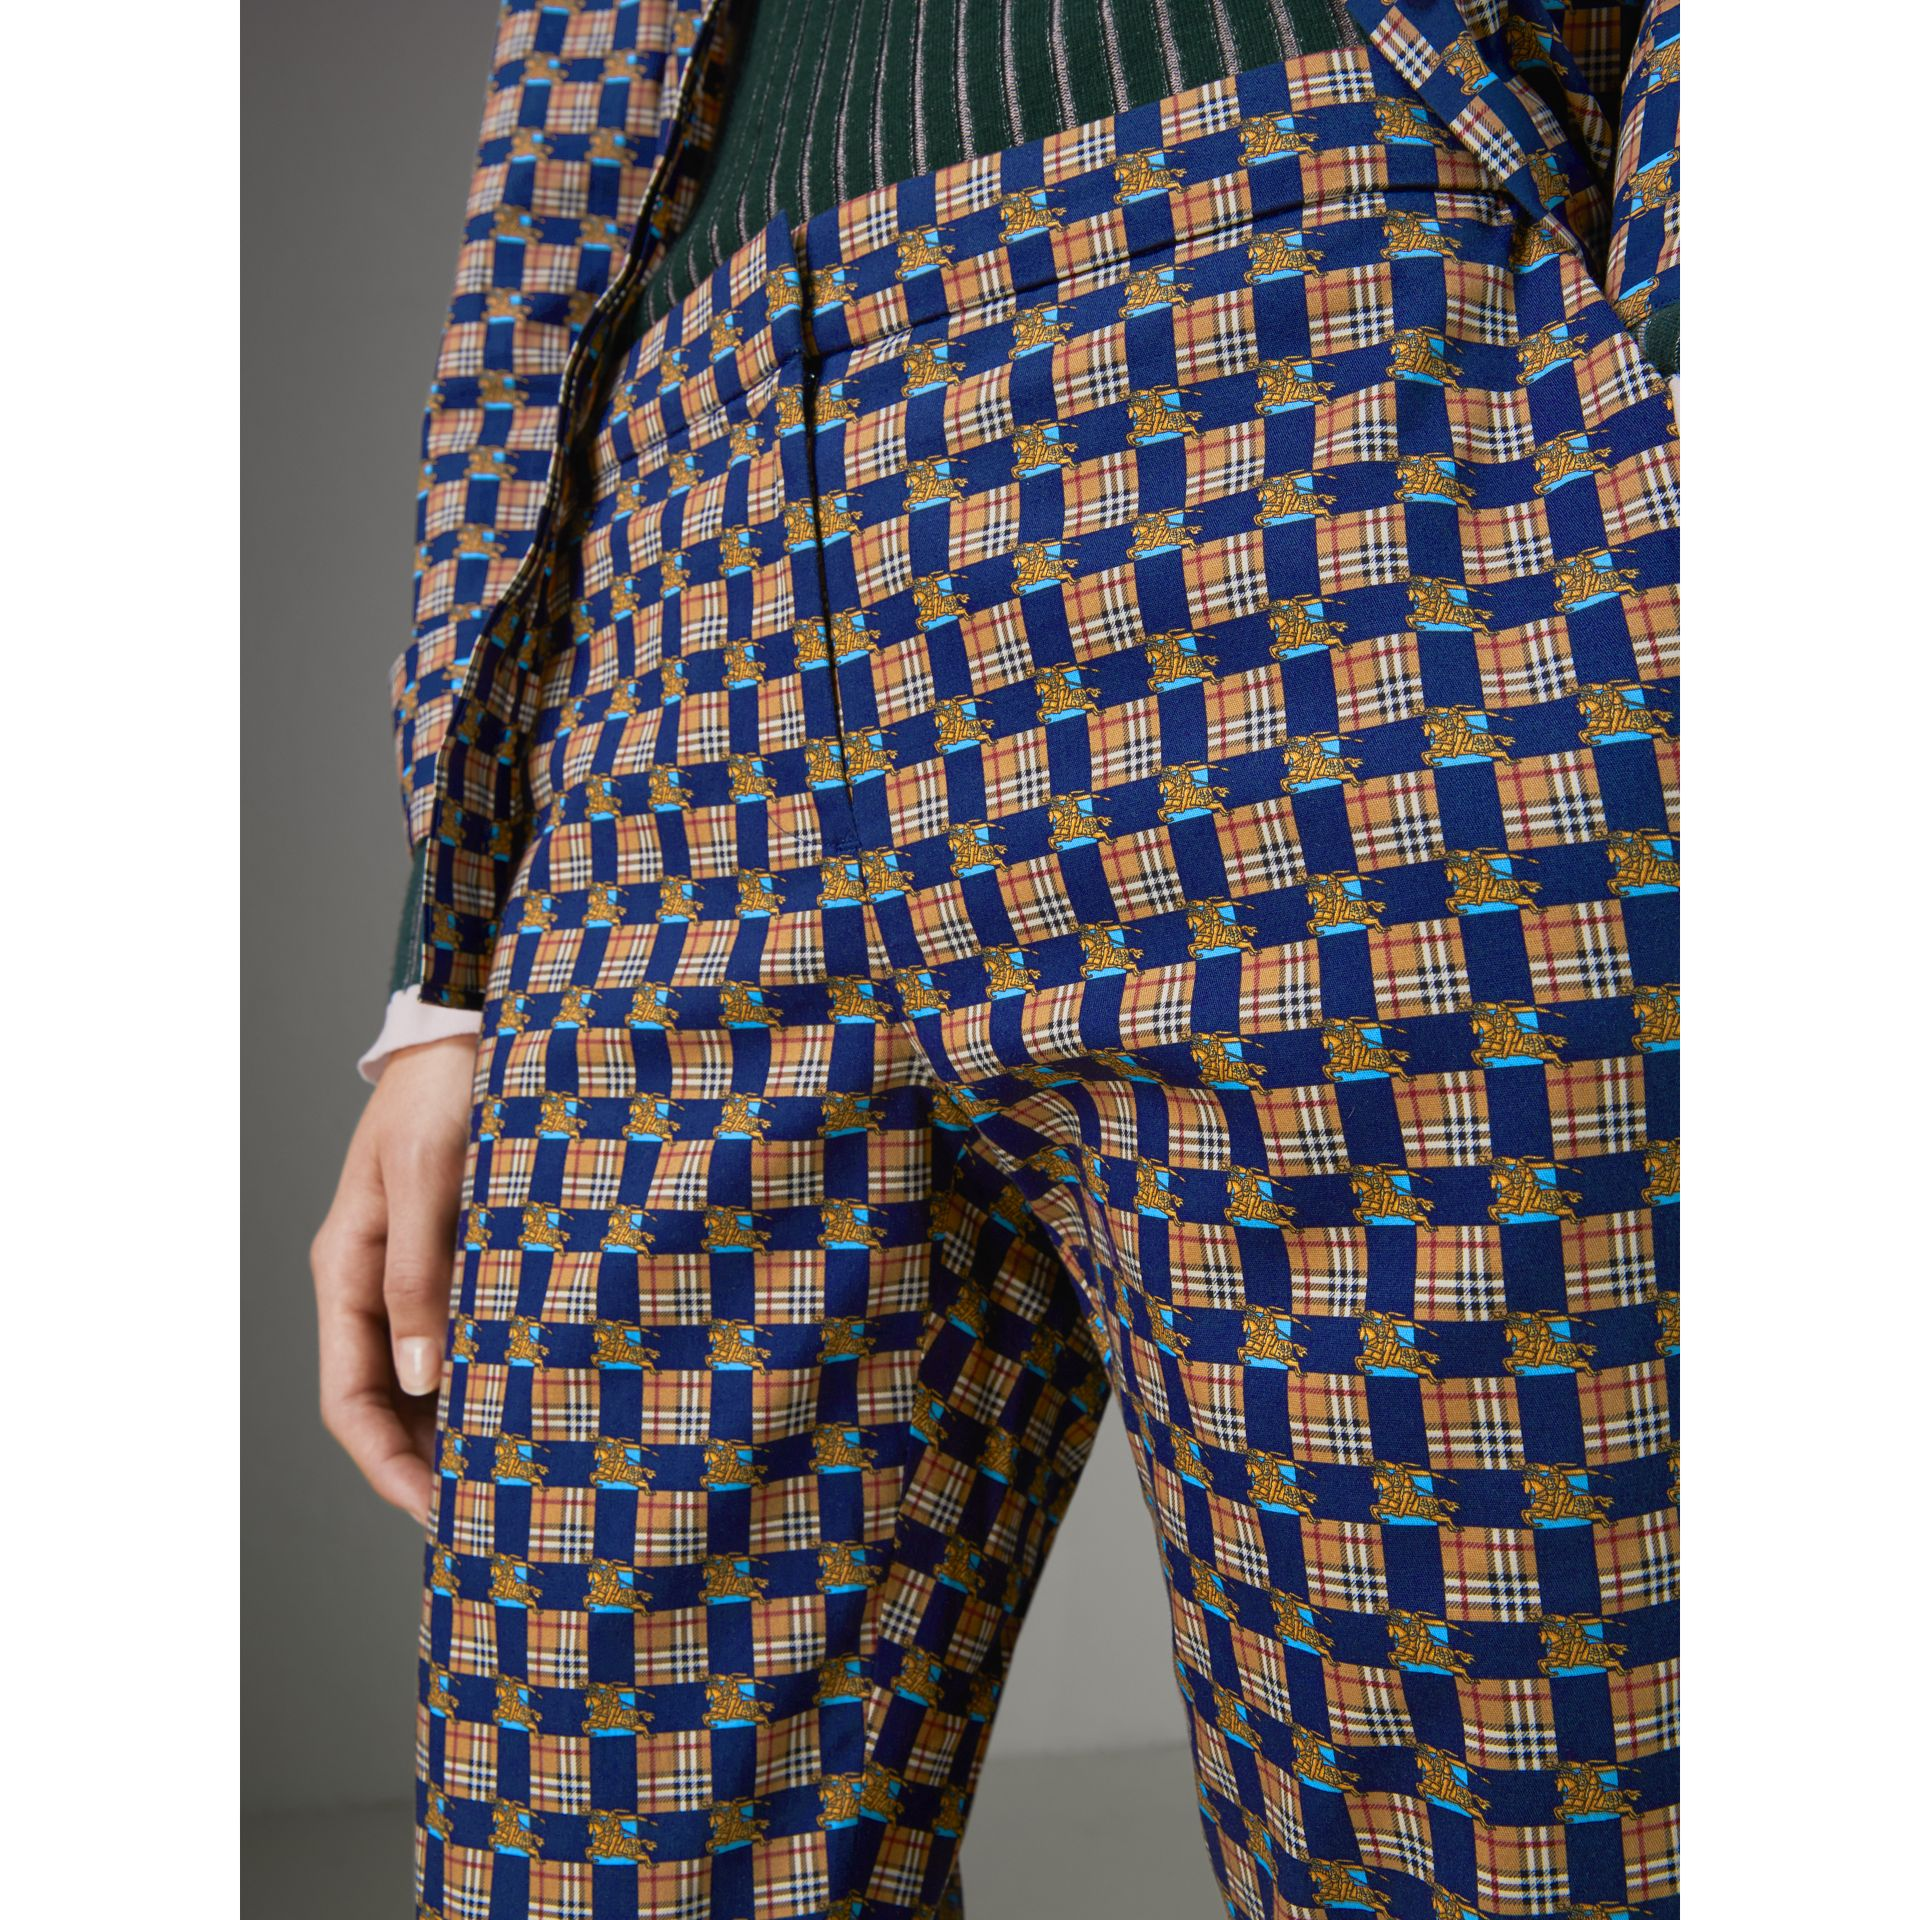 Tiled Archive Print Stretch Cotton Cigarette Trousers in Navy - Women | Burberry - gallery image 1